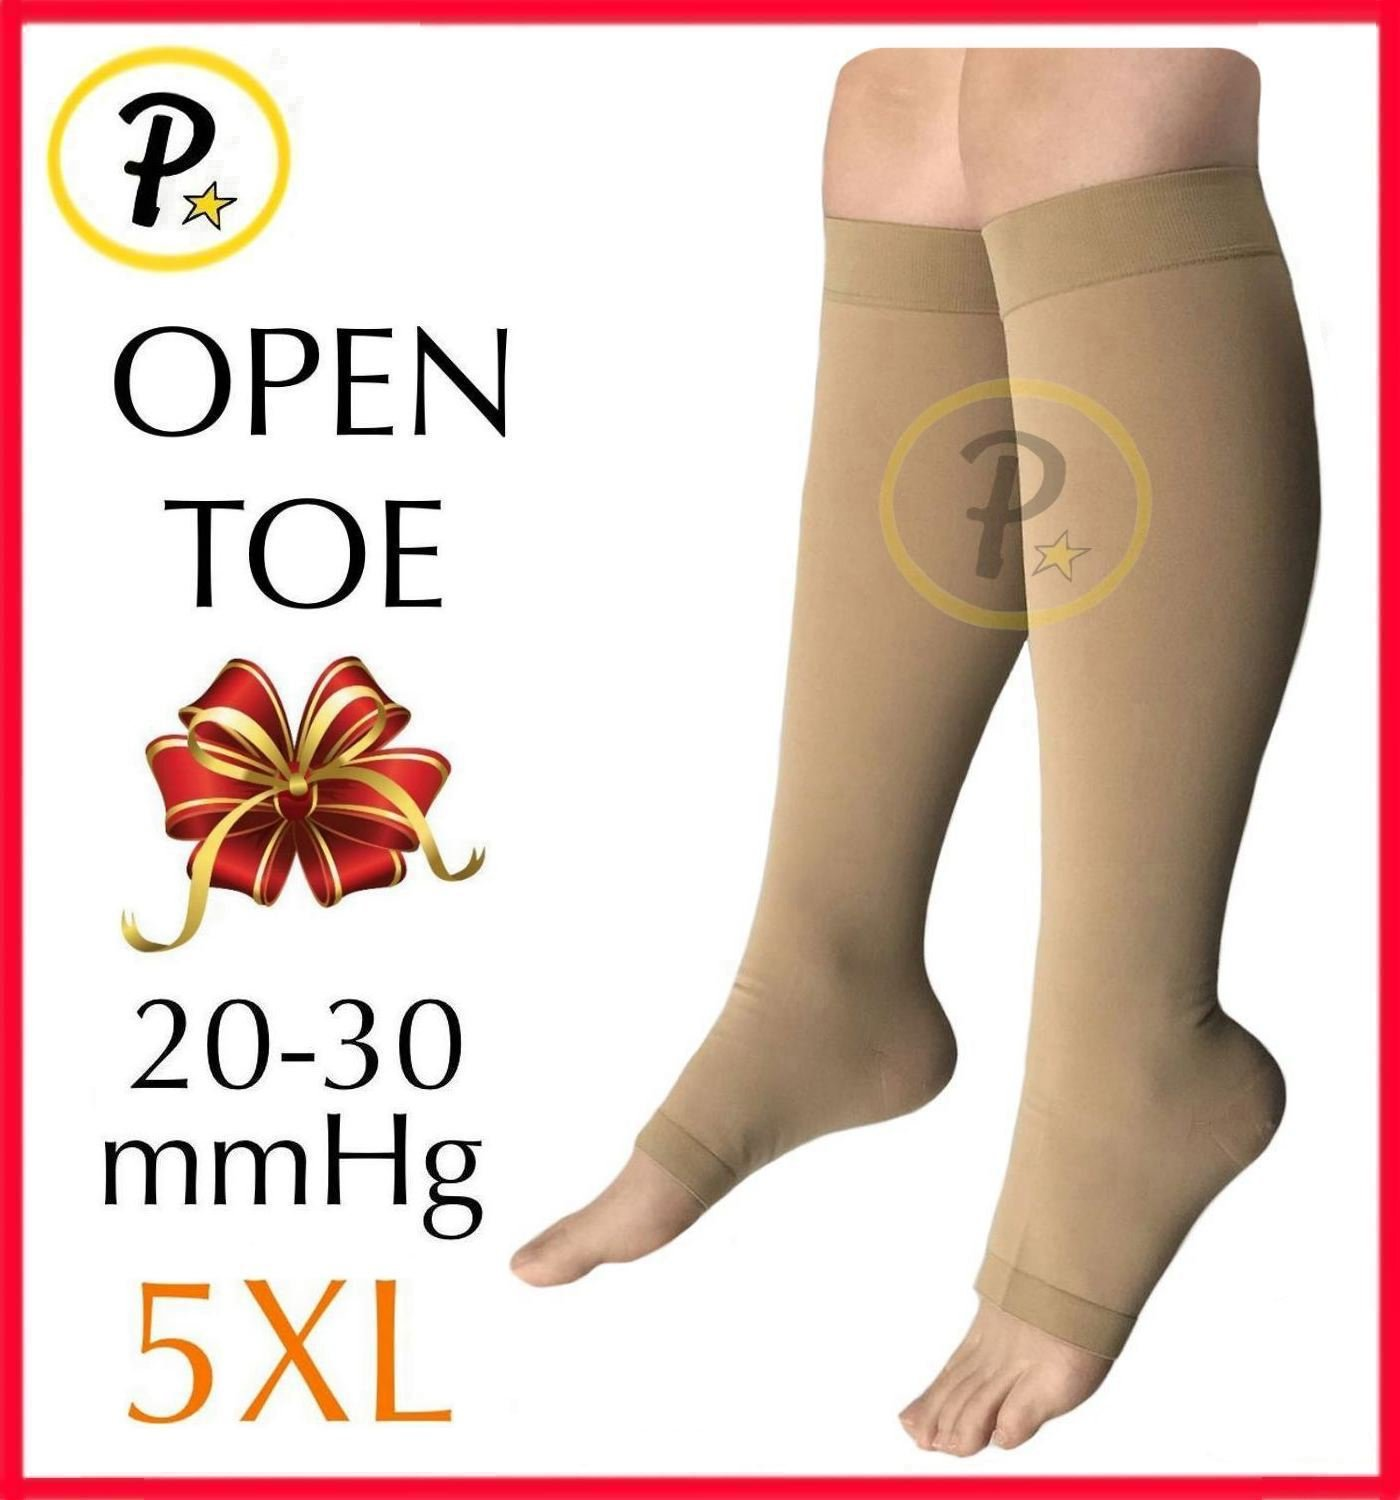 Presadee (BIG & TALL SUPER SIZE) Traditional Open Toe 20-30 mmHg Graduated Medical Compression Ankle Leg Calf Swelling Relief Support Sock (Beige, 5XL)